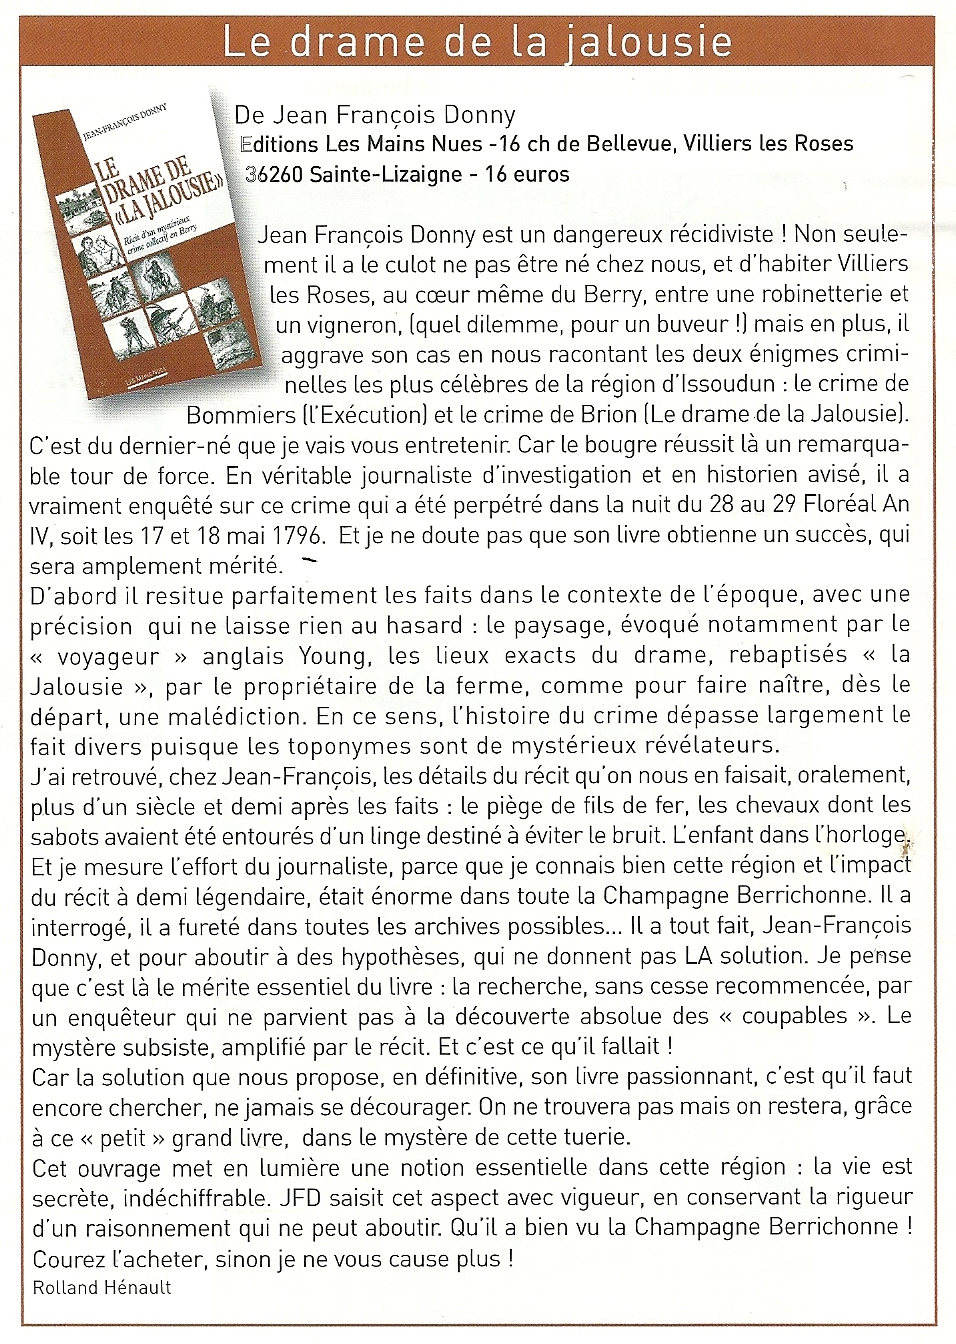 La_Jalousie_-_Article_de_La_Bouinotte